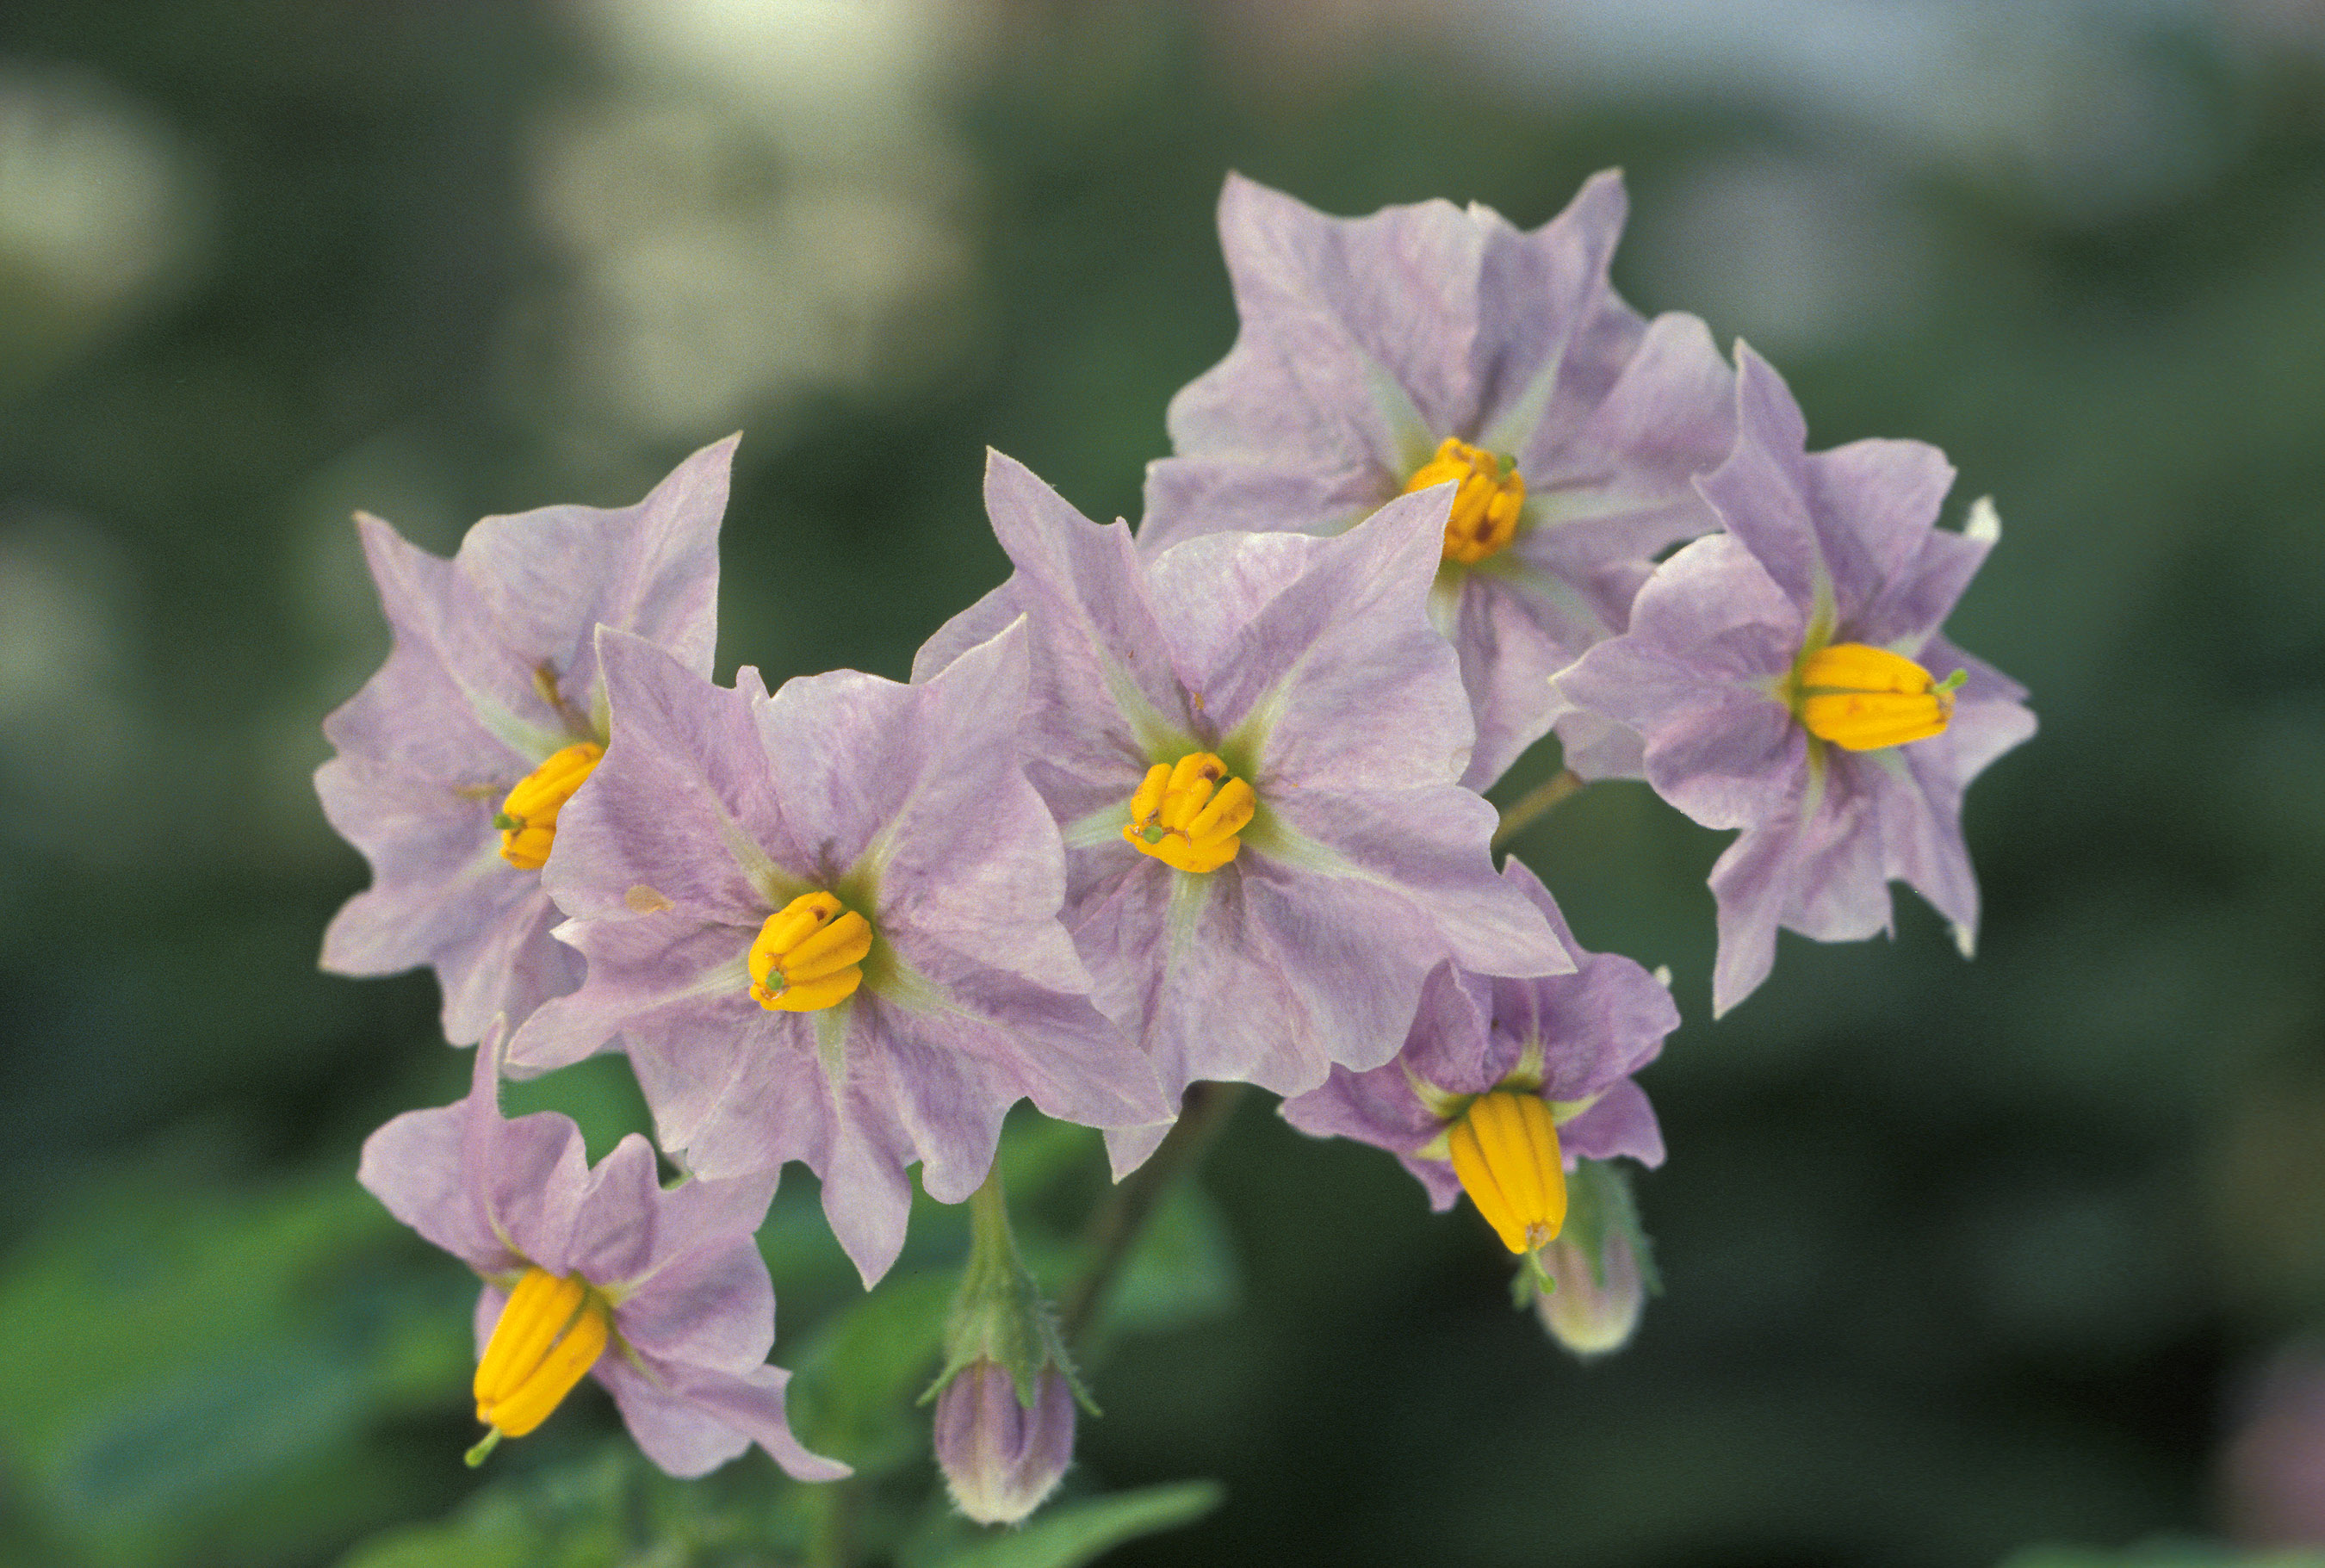 Flowers jpg images image royalty free download File:Potato flowers.jpg - Wikimedia Commons image royalty free download